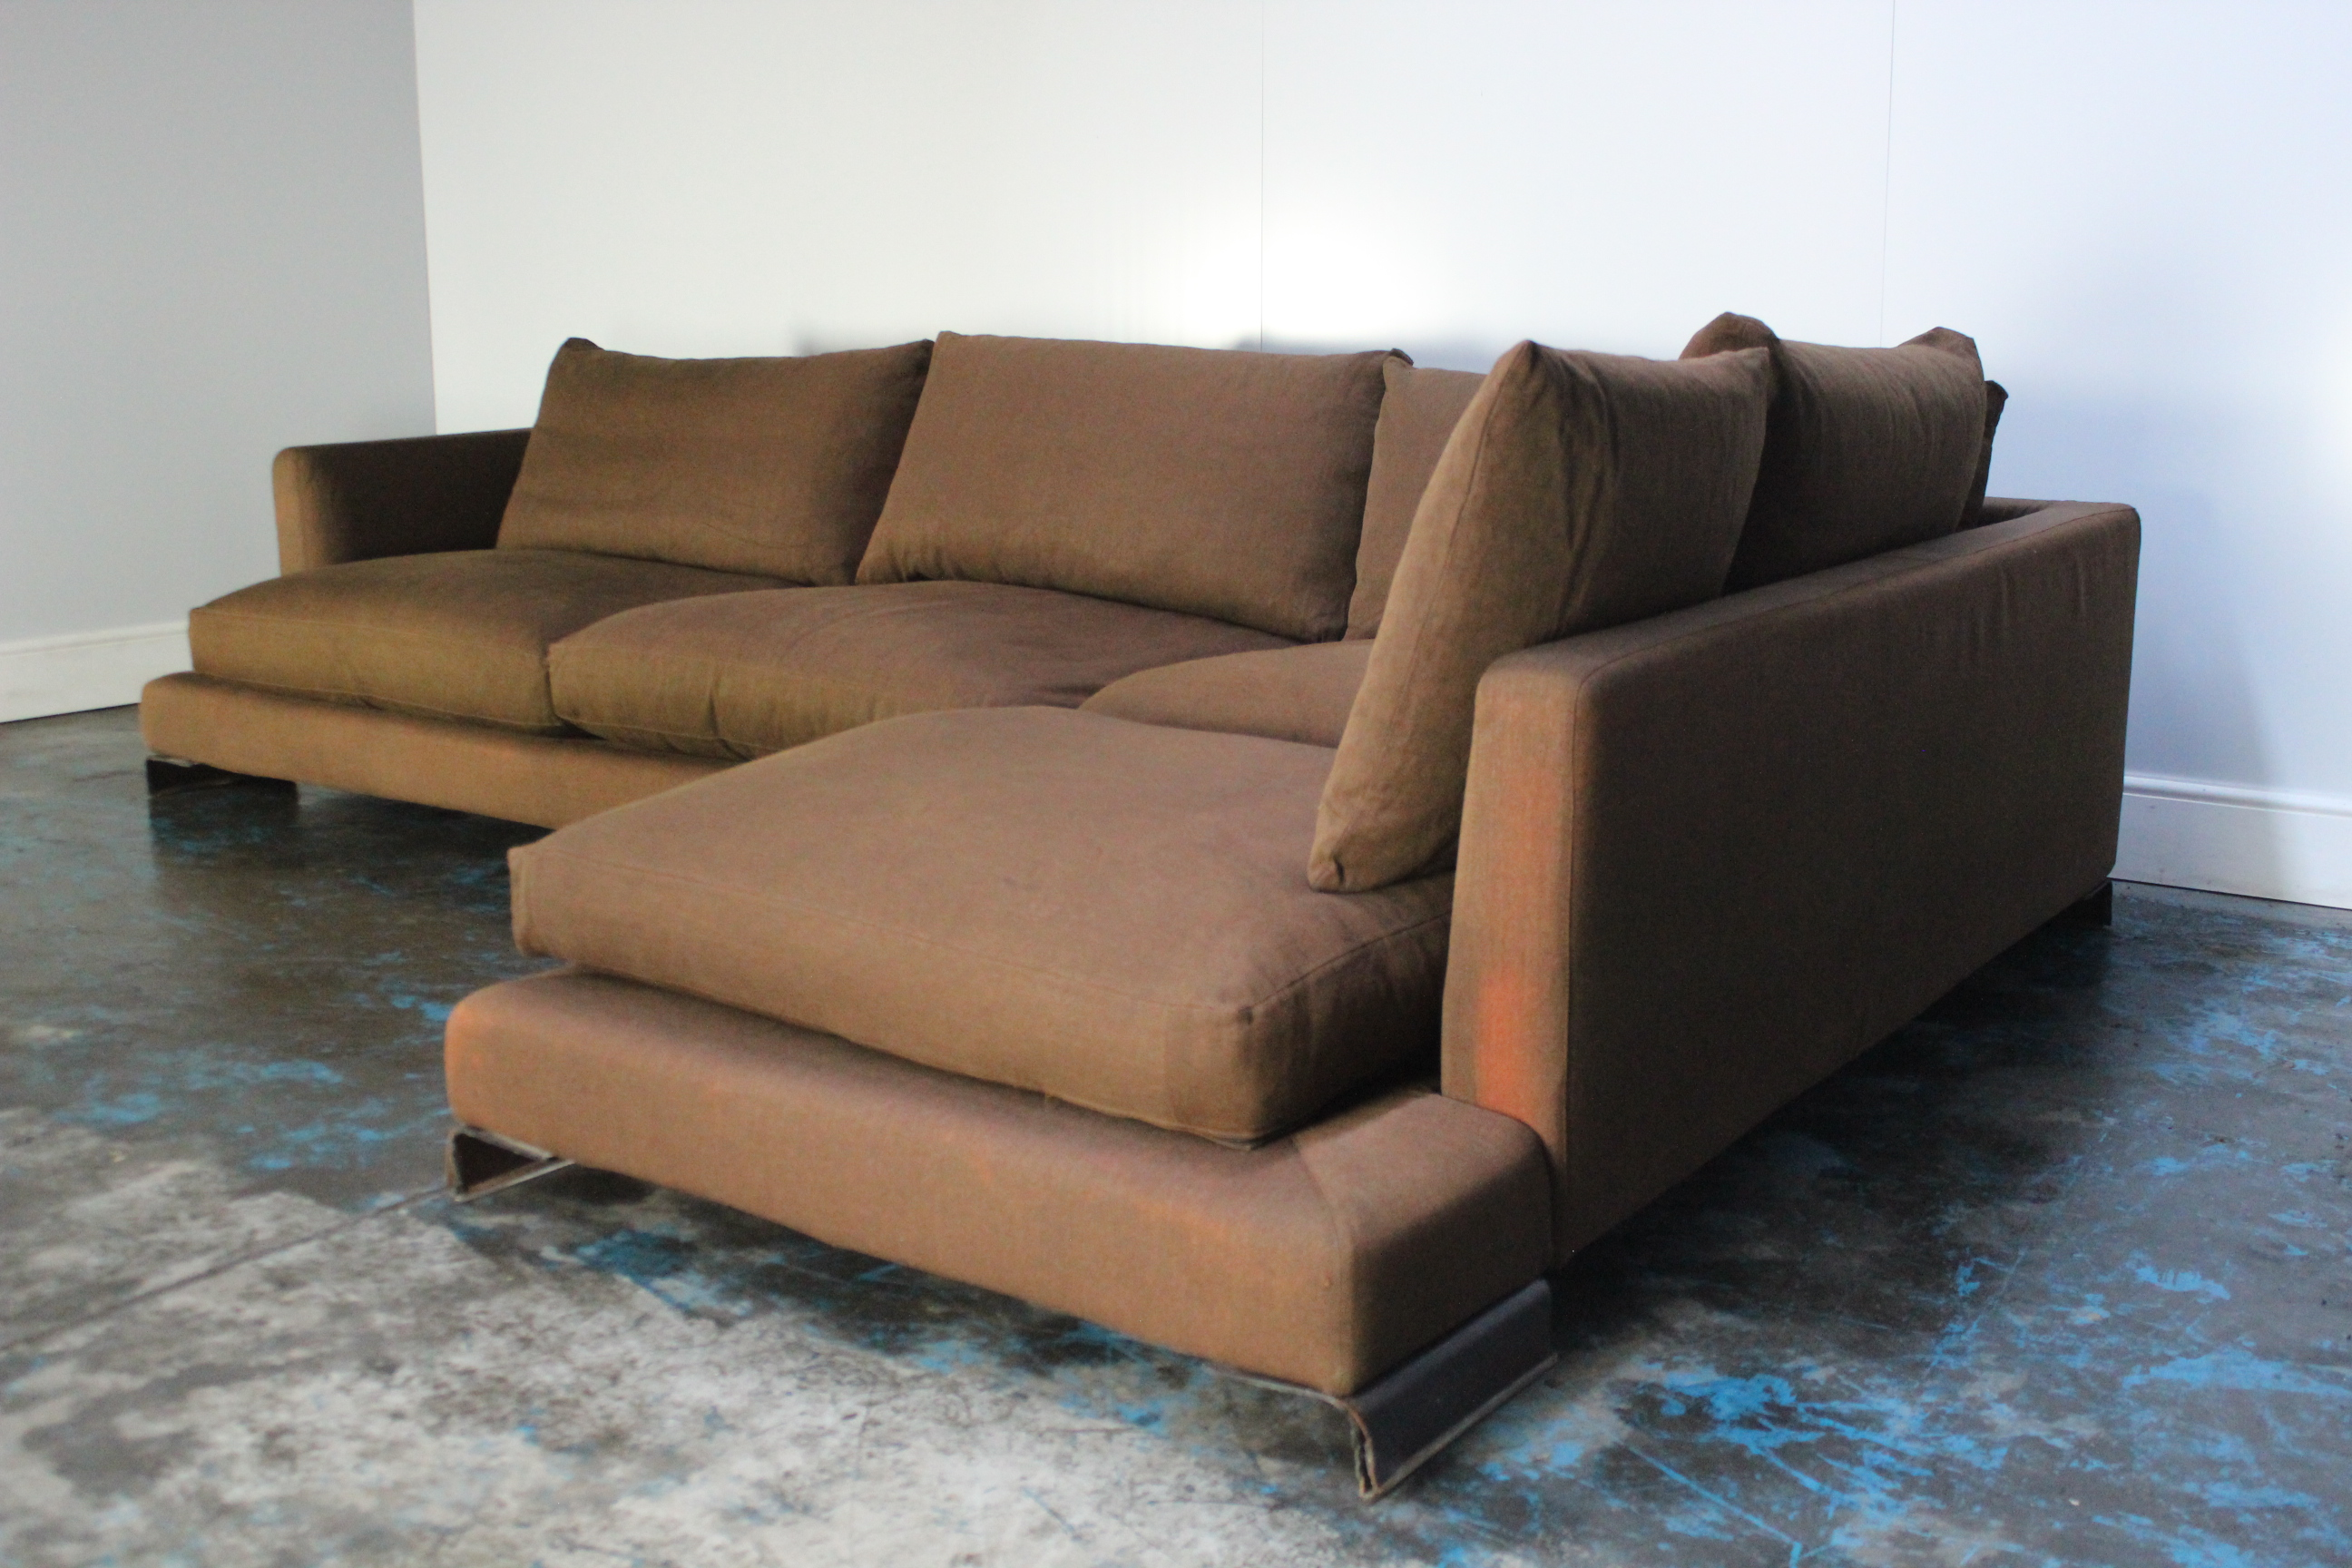 Surprising Peerless Huge Flexform Long Island Sectional L Shape Sofa Onthecornerstone Fun Painted Chair Ideas Images Onthecornerstoneorg